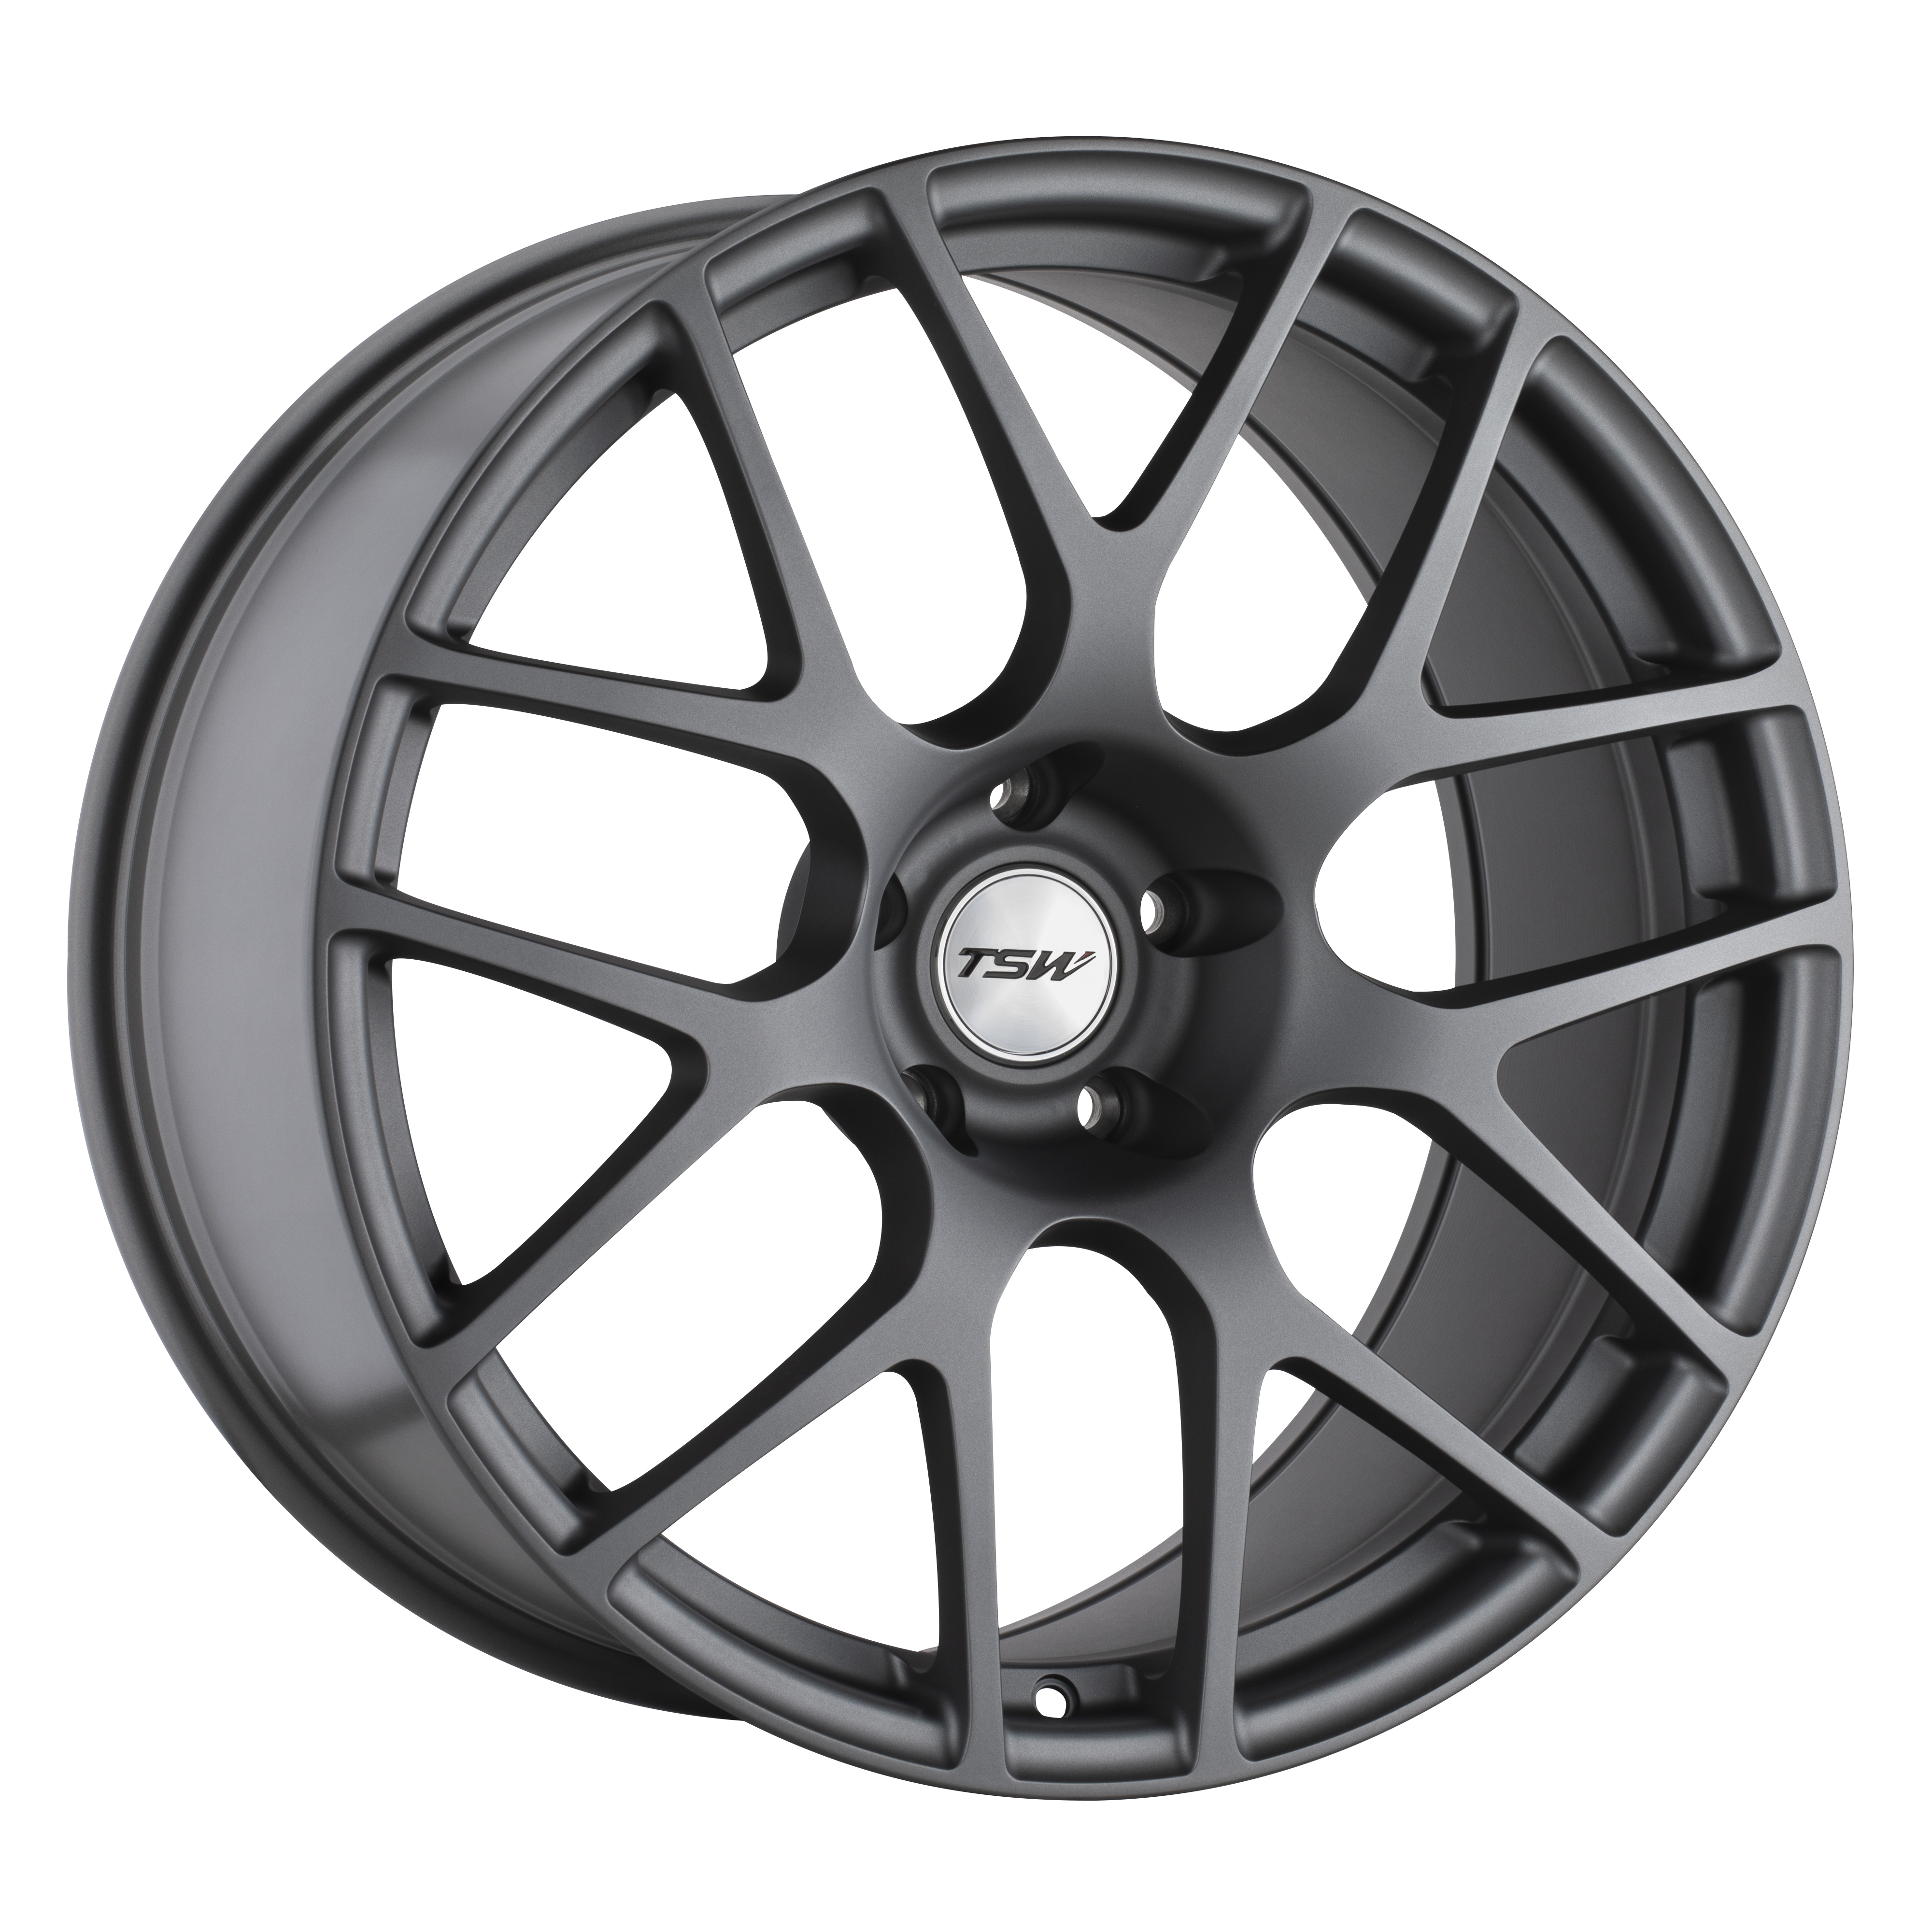 Nurburgring Alloy Wheels by TSW on golf warehouse carts, trailer specs, golf push carts, golf pull carts, food specs, 2009 club car precedent specs,